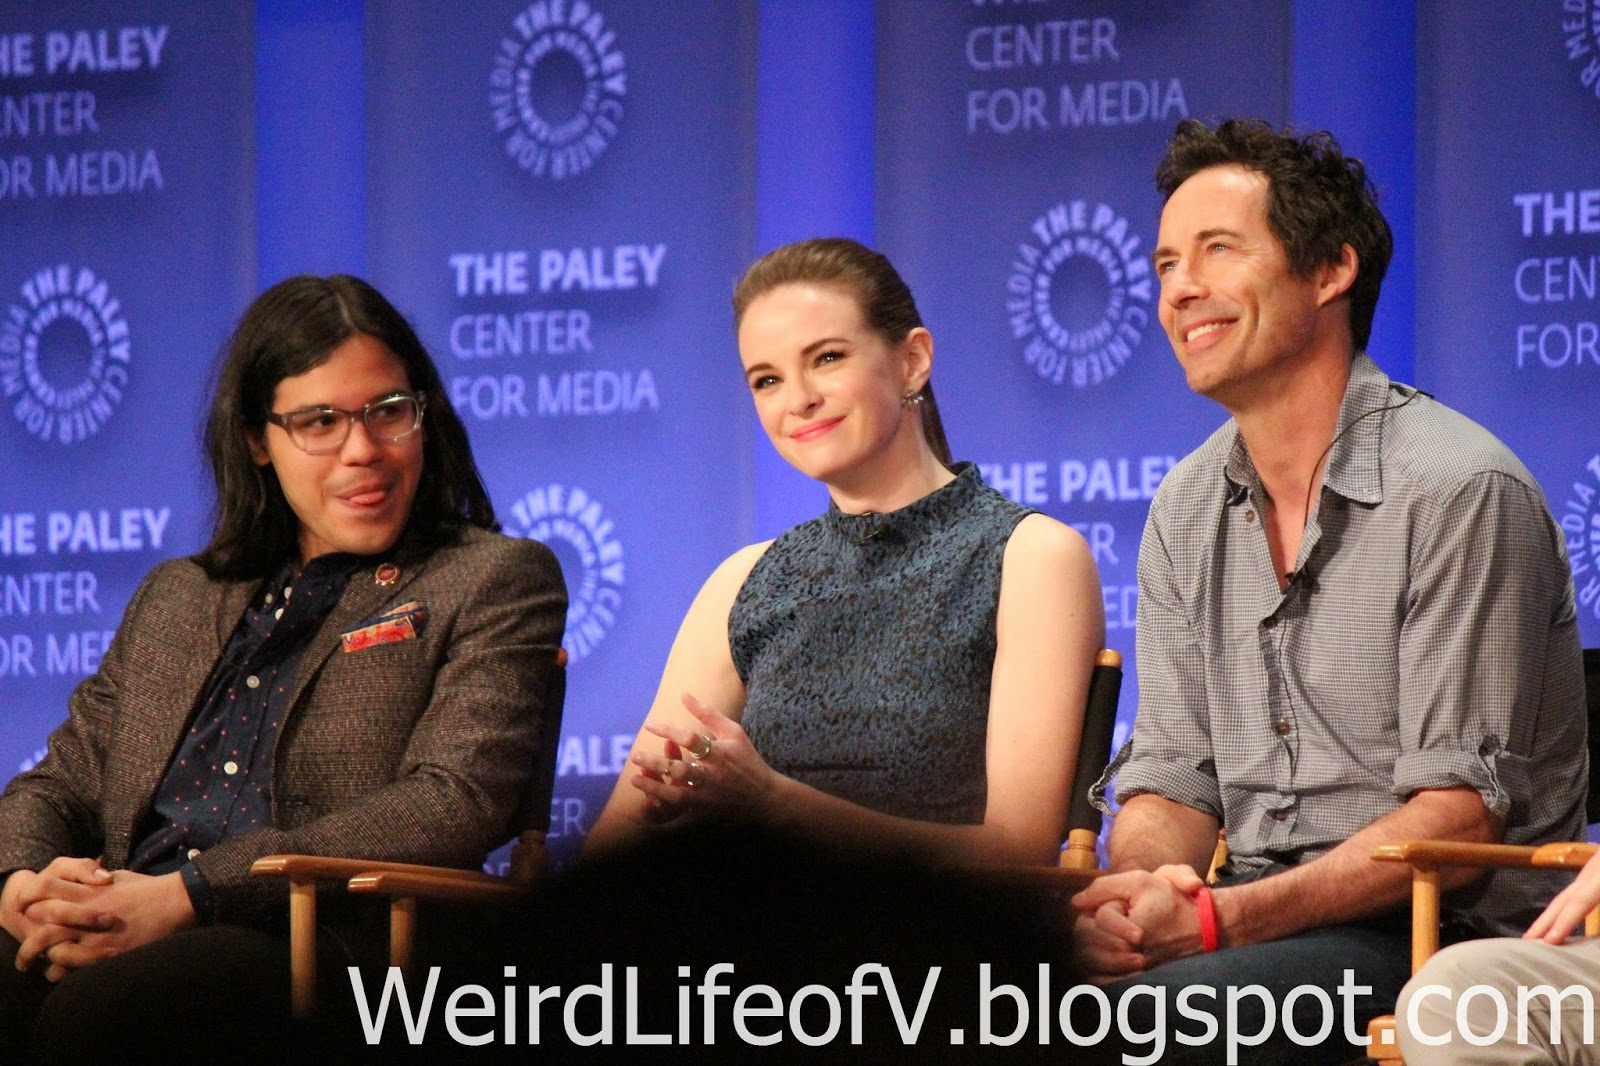 Carlos Valdes, Danielle Panabaker, and Tom Cavanaugh